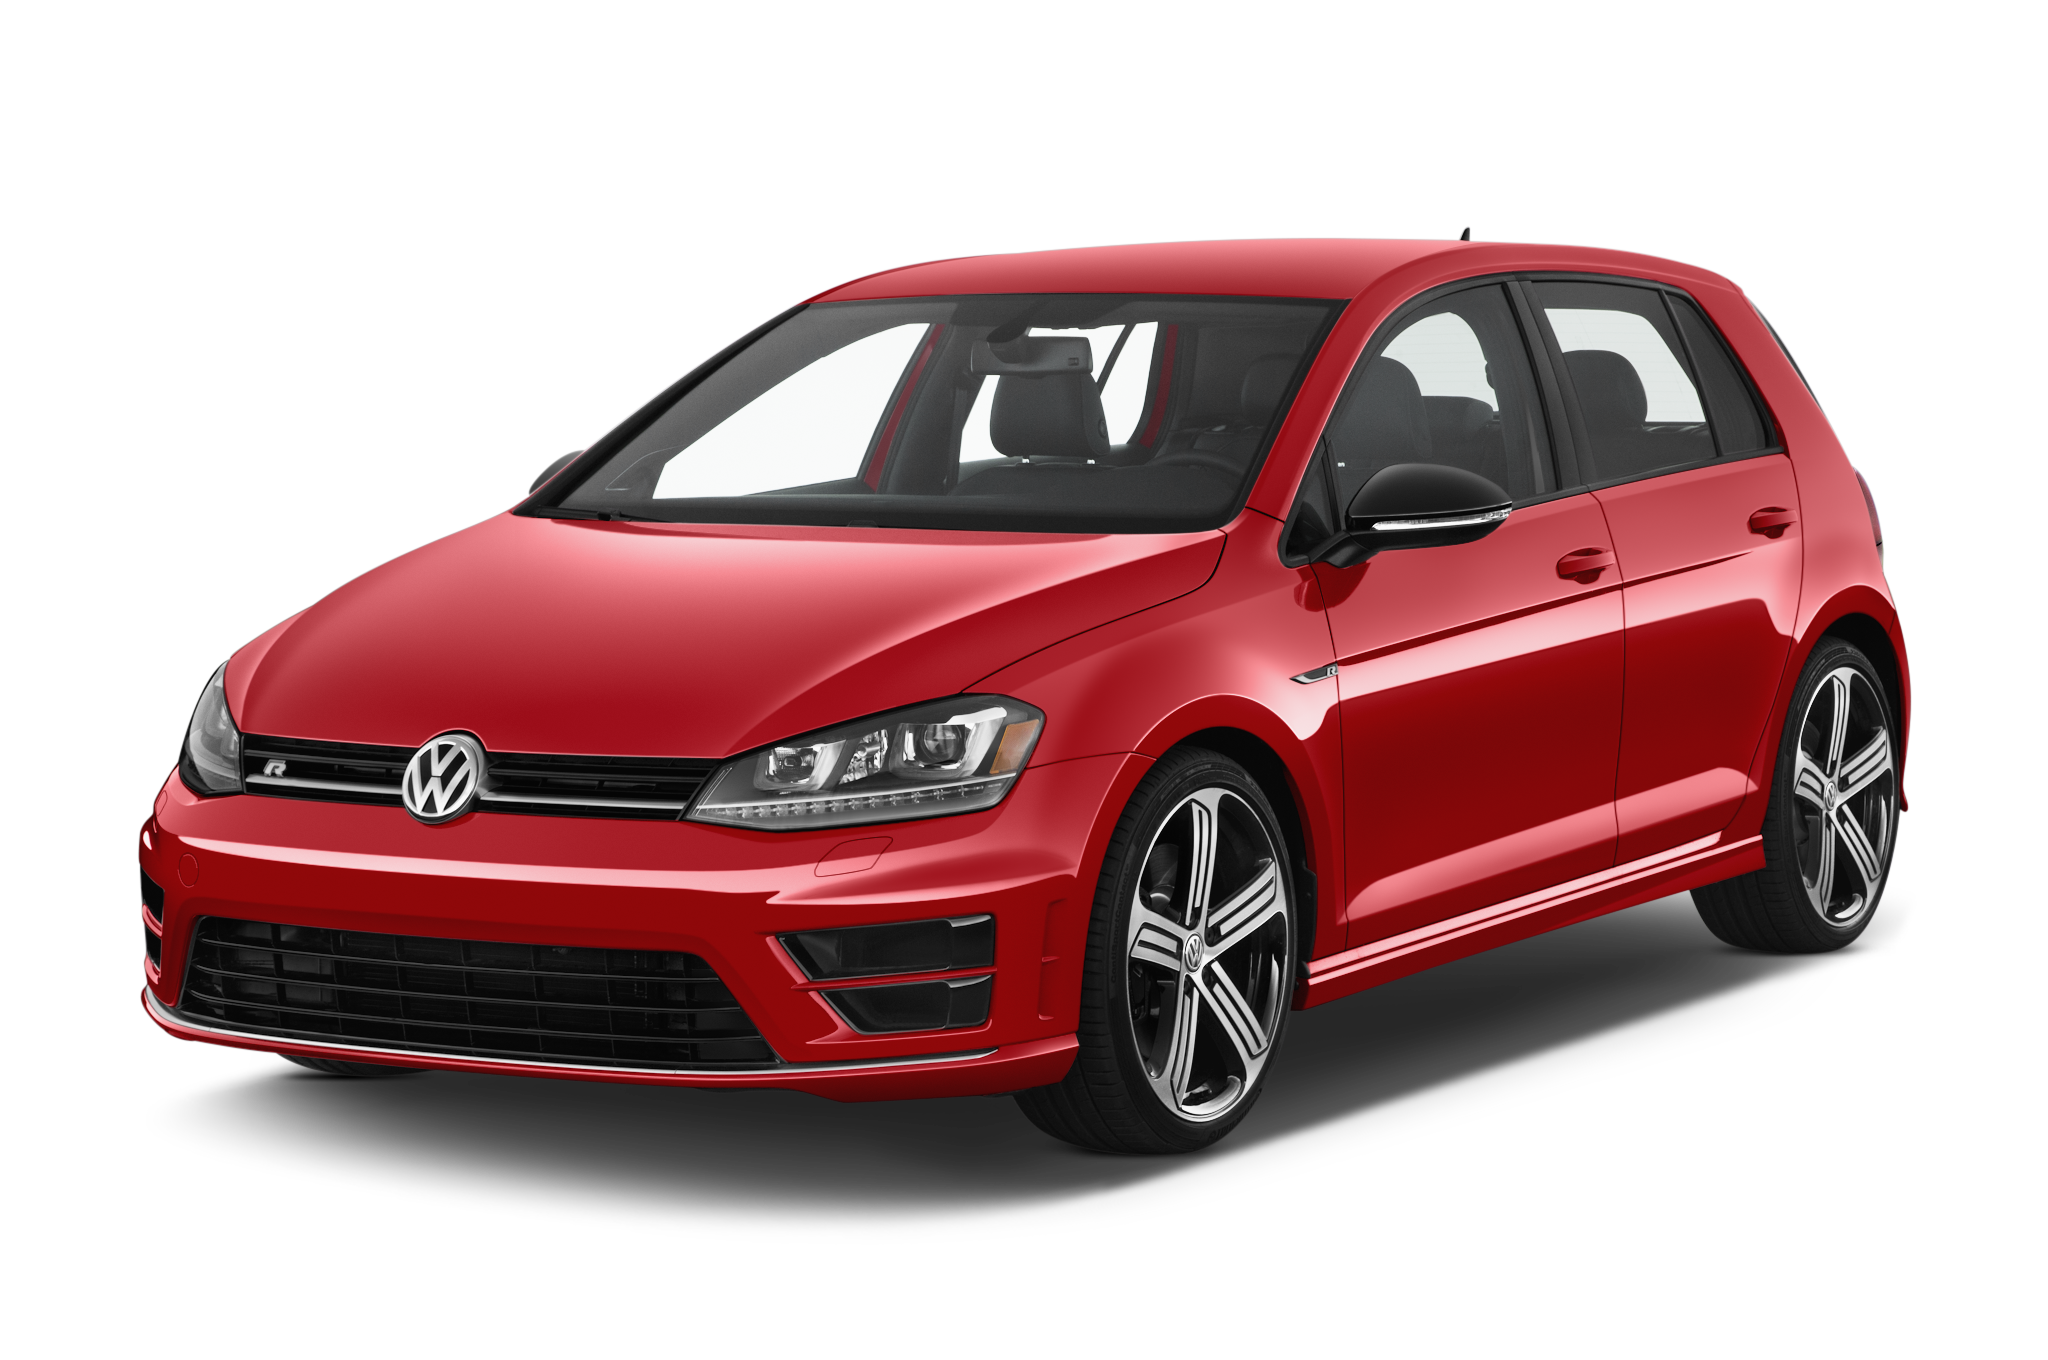 volkswagen discontinues jetta hybrid as brand lineup gets leaner. Black Bedroom Furniture Sets. Home Design Ideas